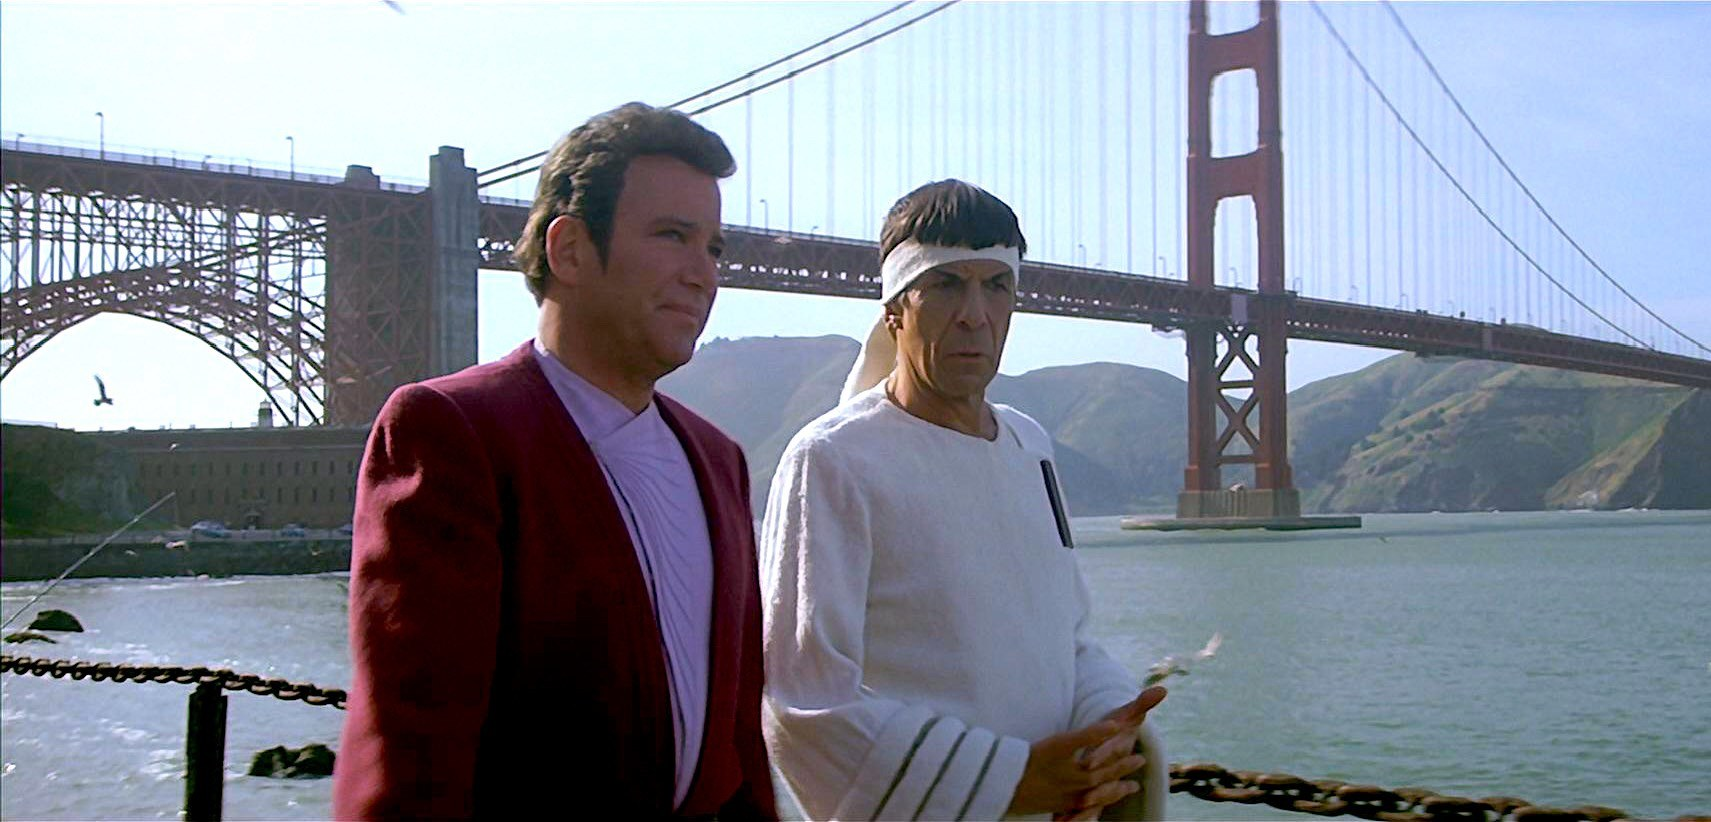 Captain Kirk (William Shatner) and Mr Spock (Leonard Nimoy) against the backdrop of the Golden Gate Bridge in The Voyage Home: Star Trek IV (1986)